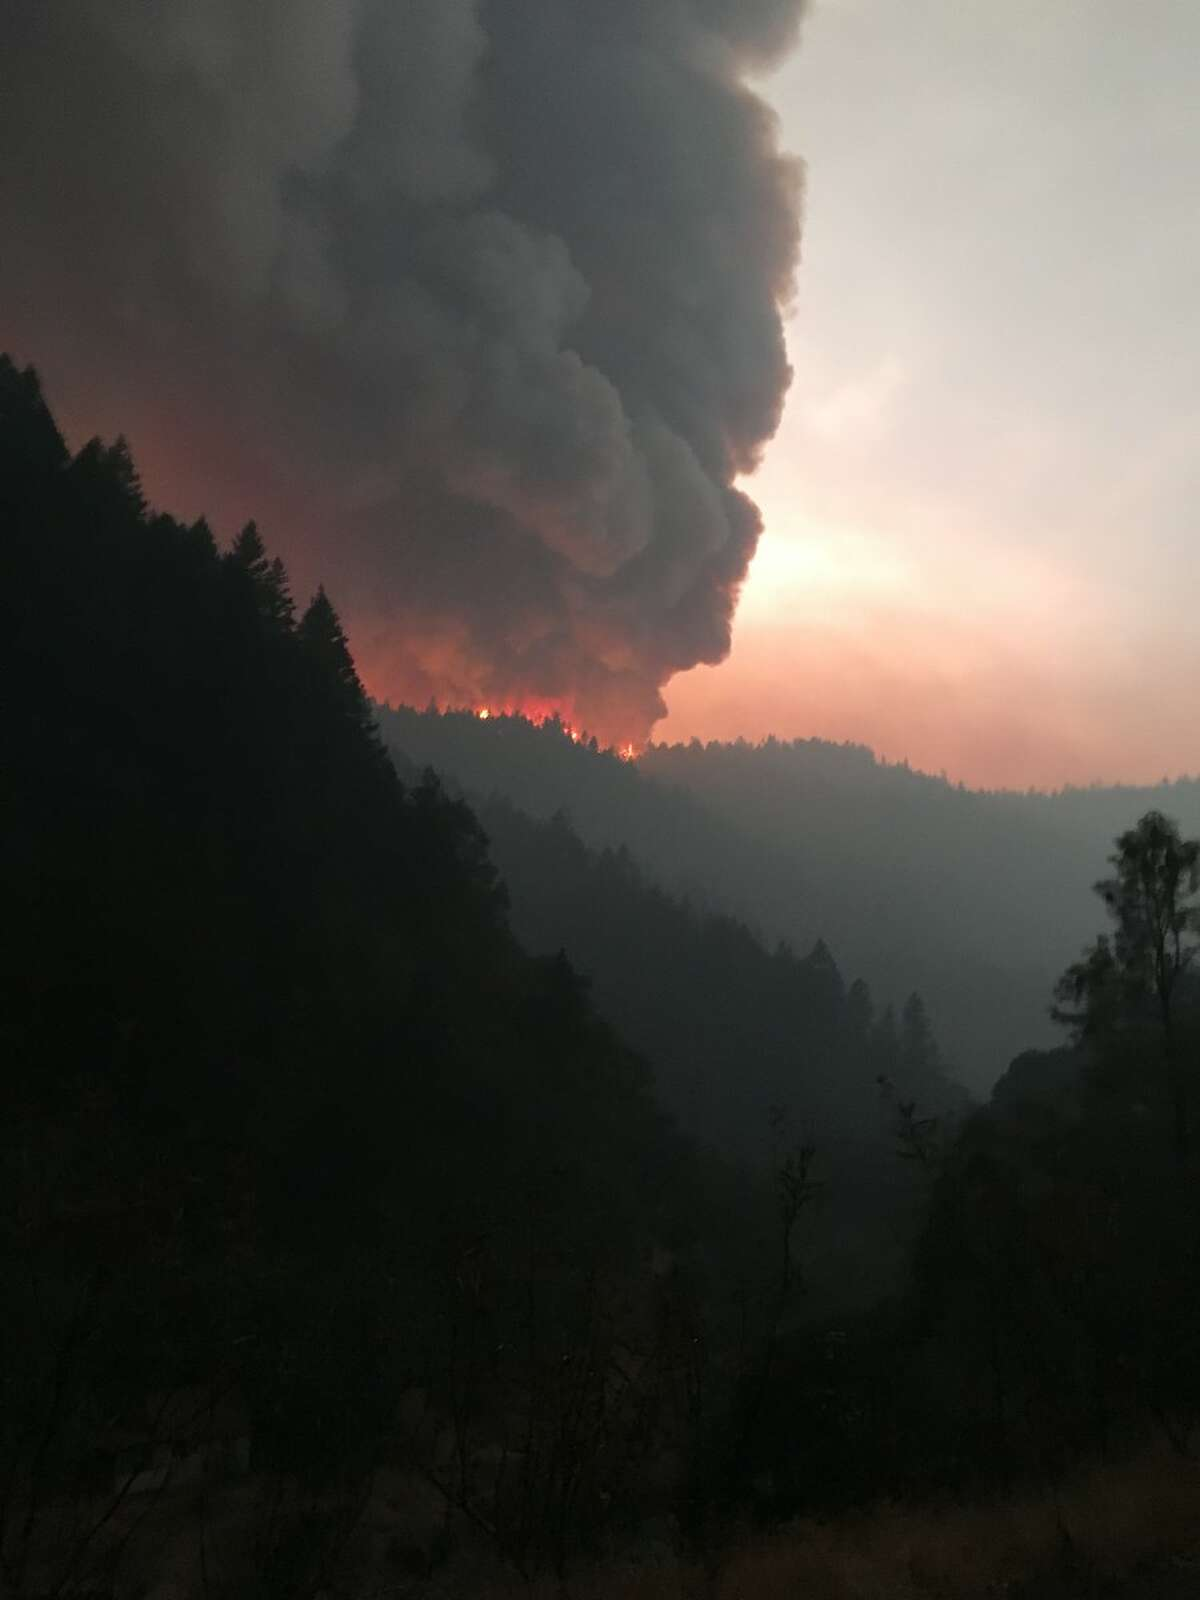 The Helena Fire began Aug. 30 and quickly spread to thousands of acres, according to fire officials.